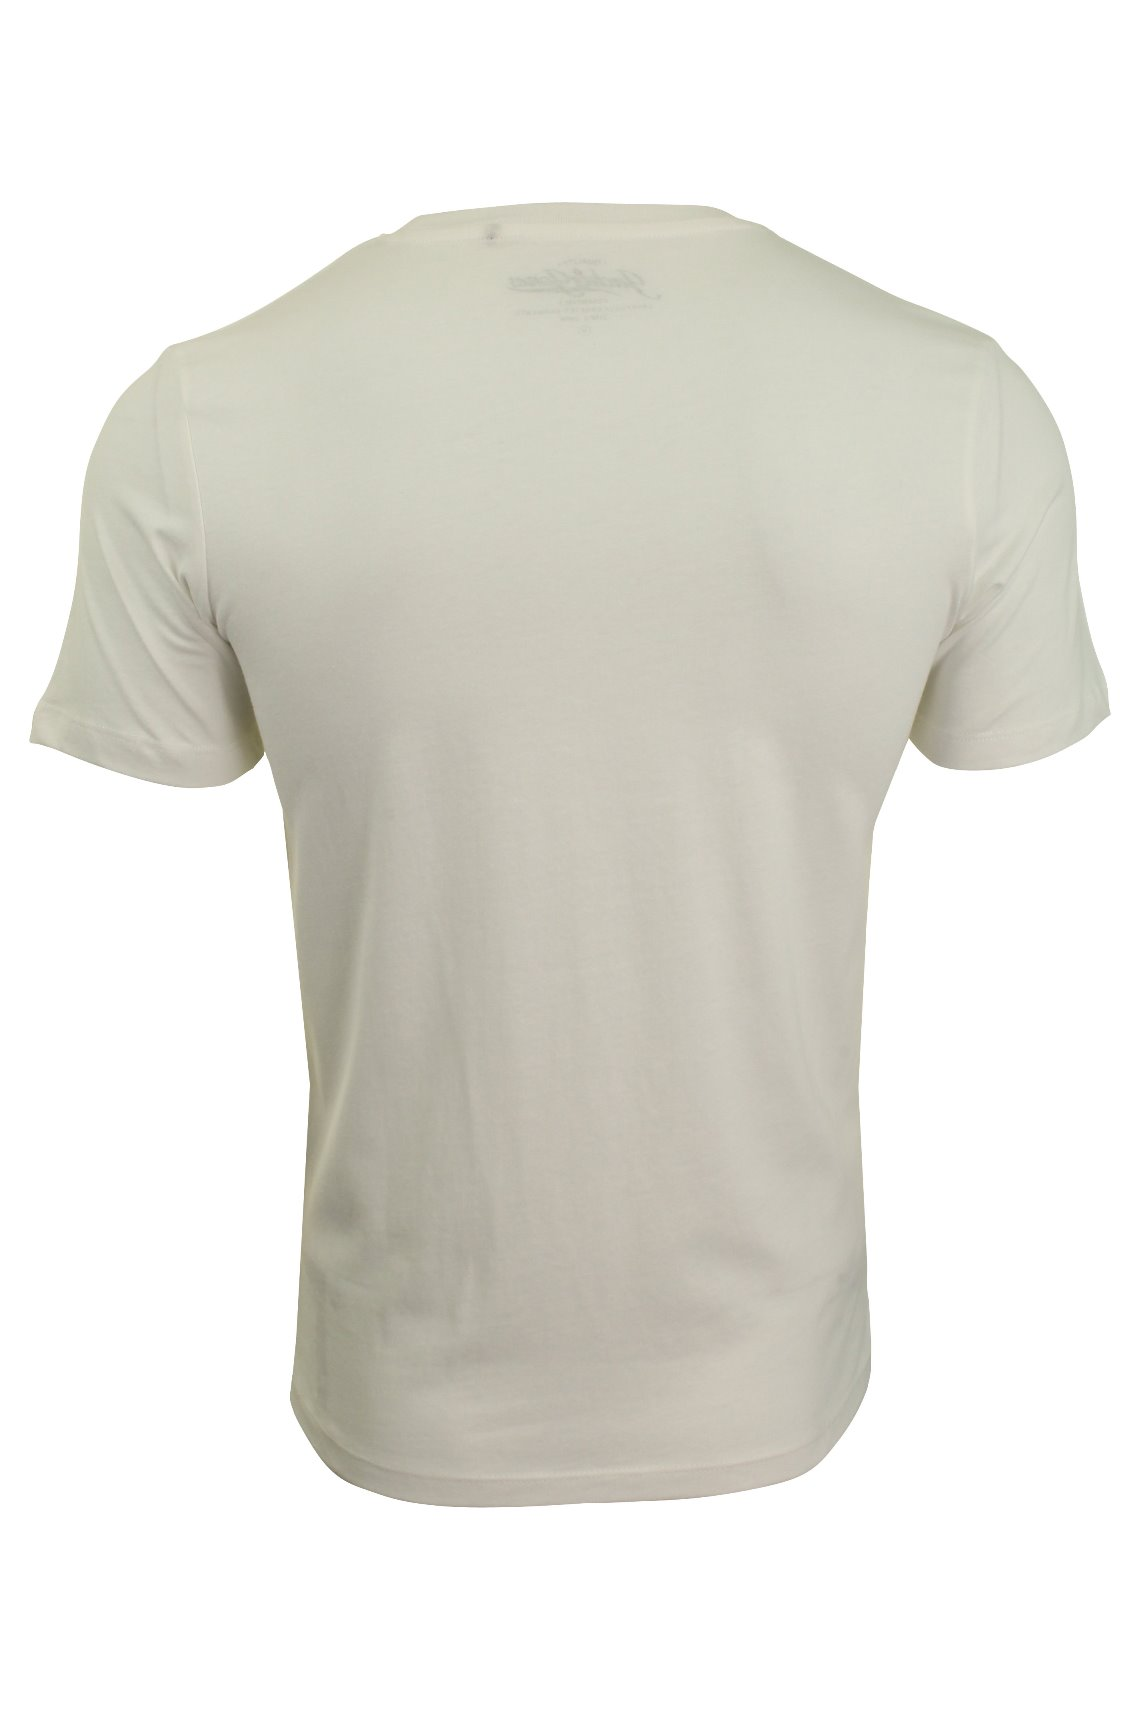 Jack-amp-Jones-Mens-Short-Sleeved-T-Shirt-039-JJEJEANS-039 thumbnail 10